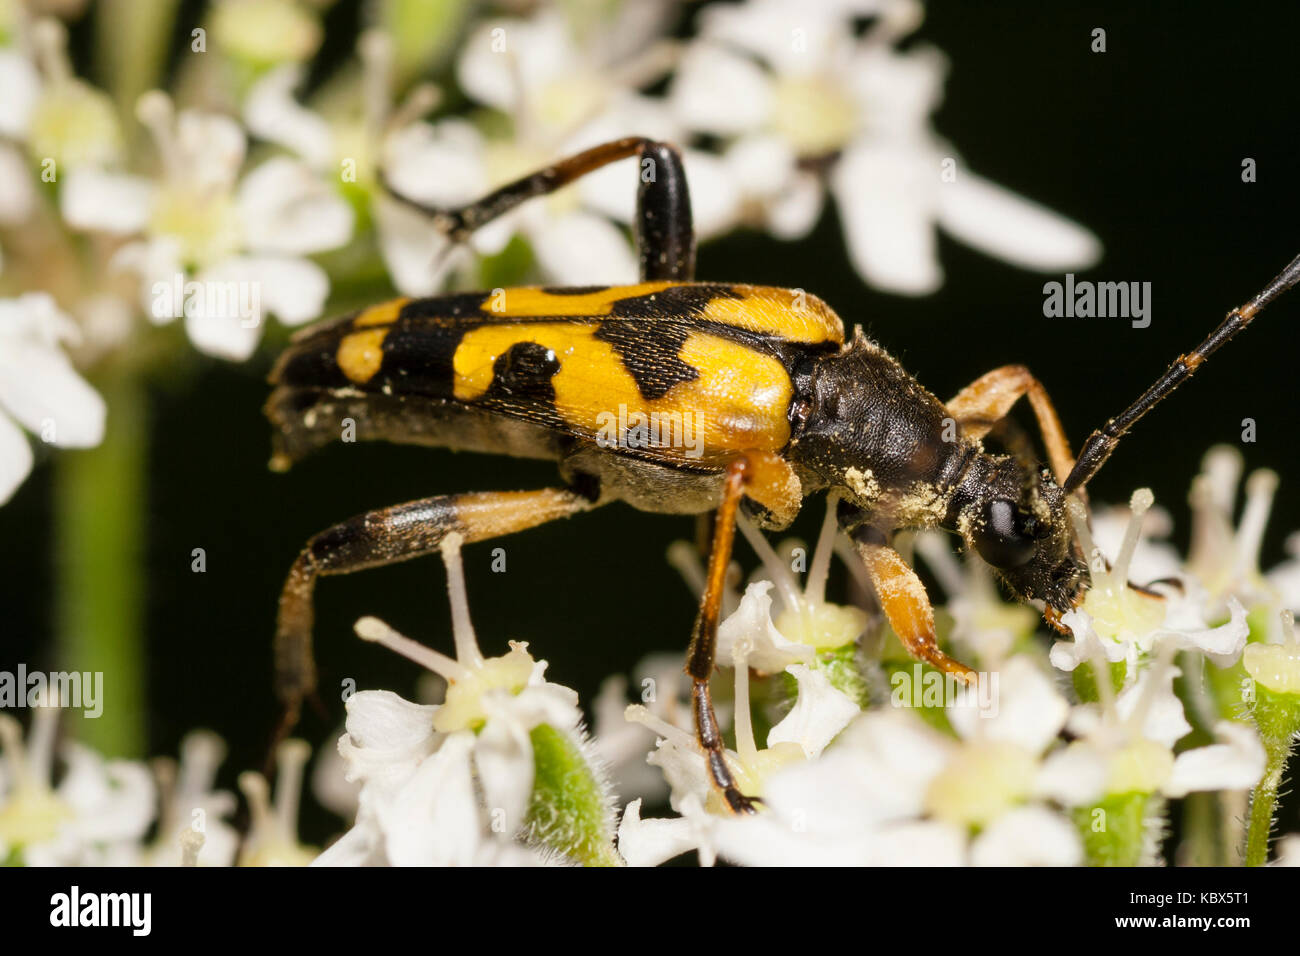 Adult spotted longhorn beetle, Rutpela maculata, feeding on umbellifer flowers - Stock Image